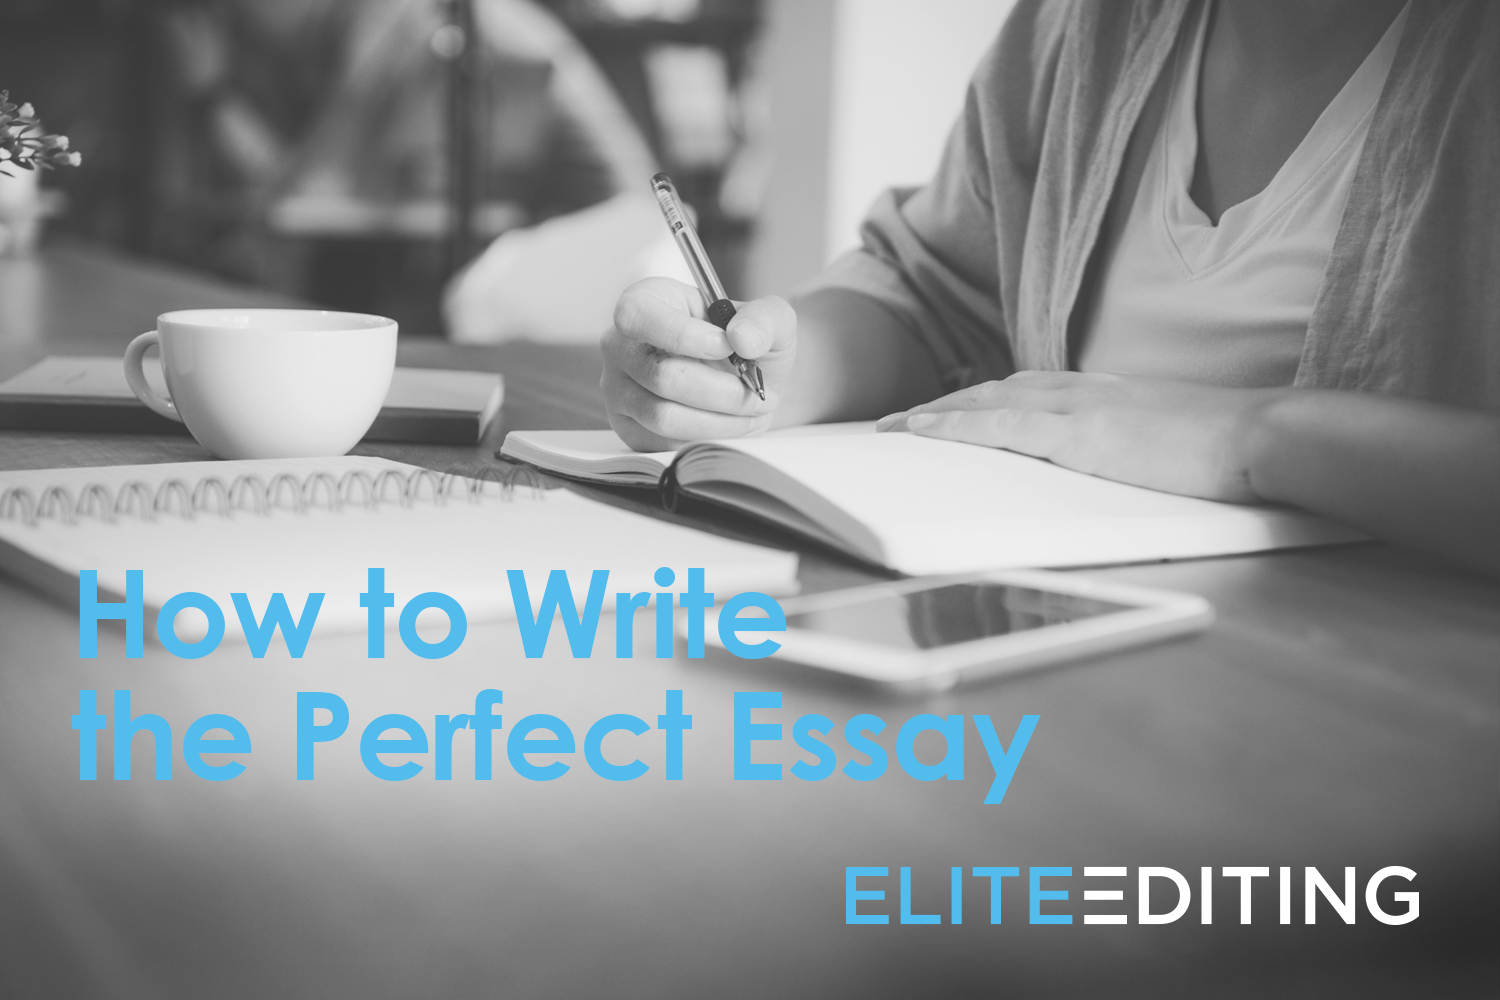 How to Write the Perfect Essay - Writing Tips - Elite Editing